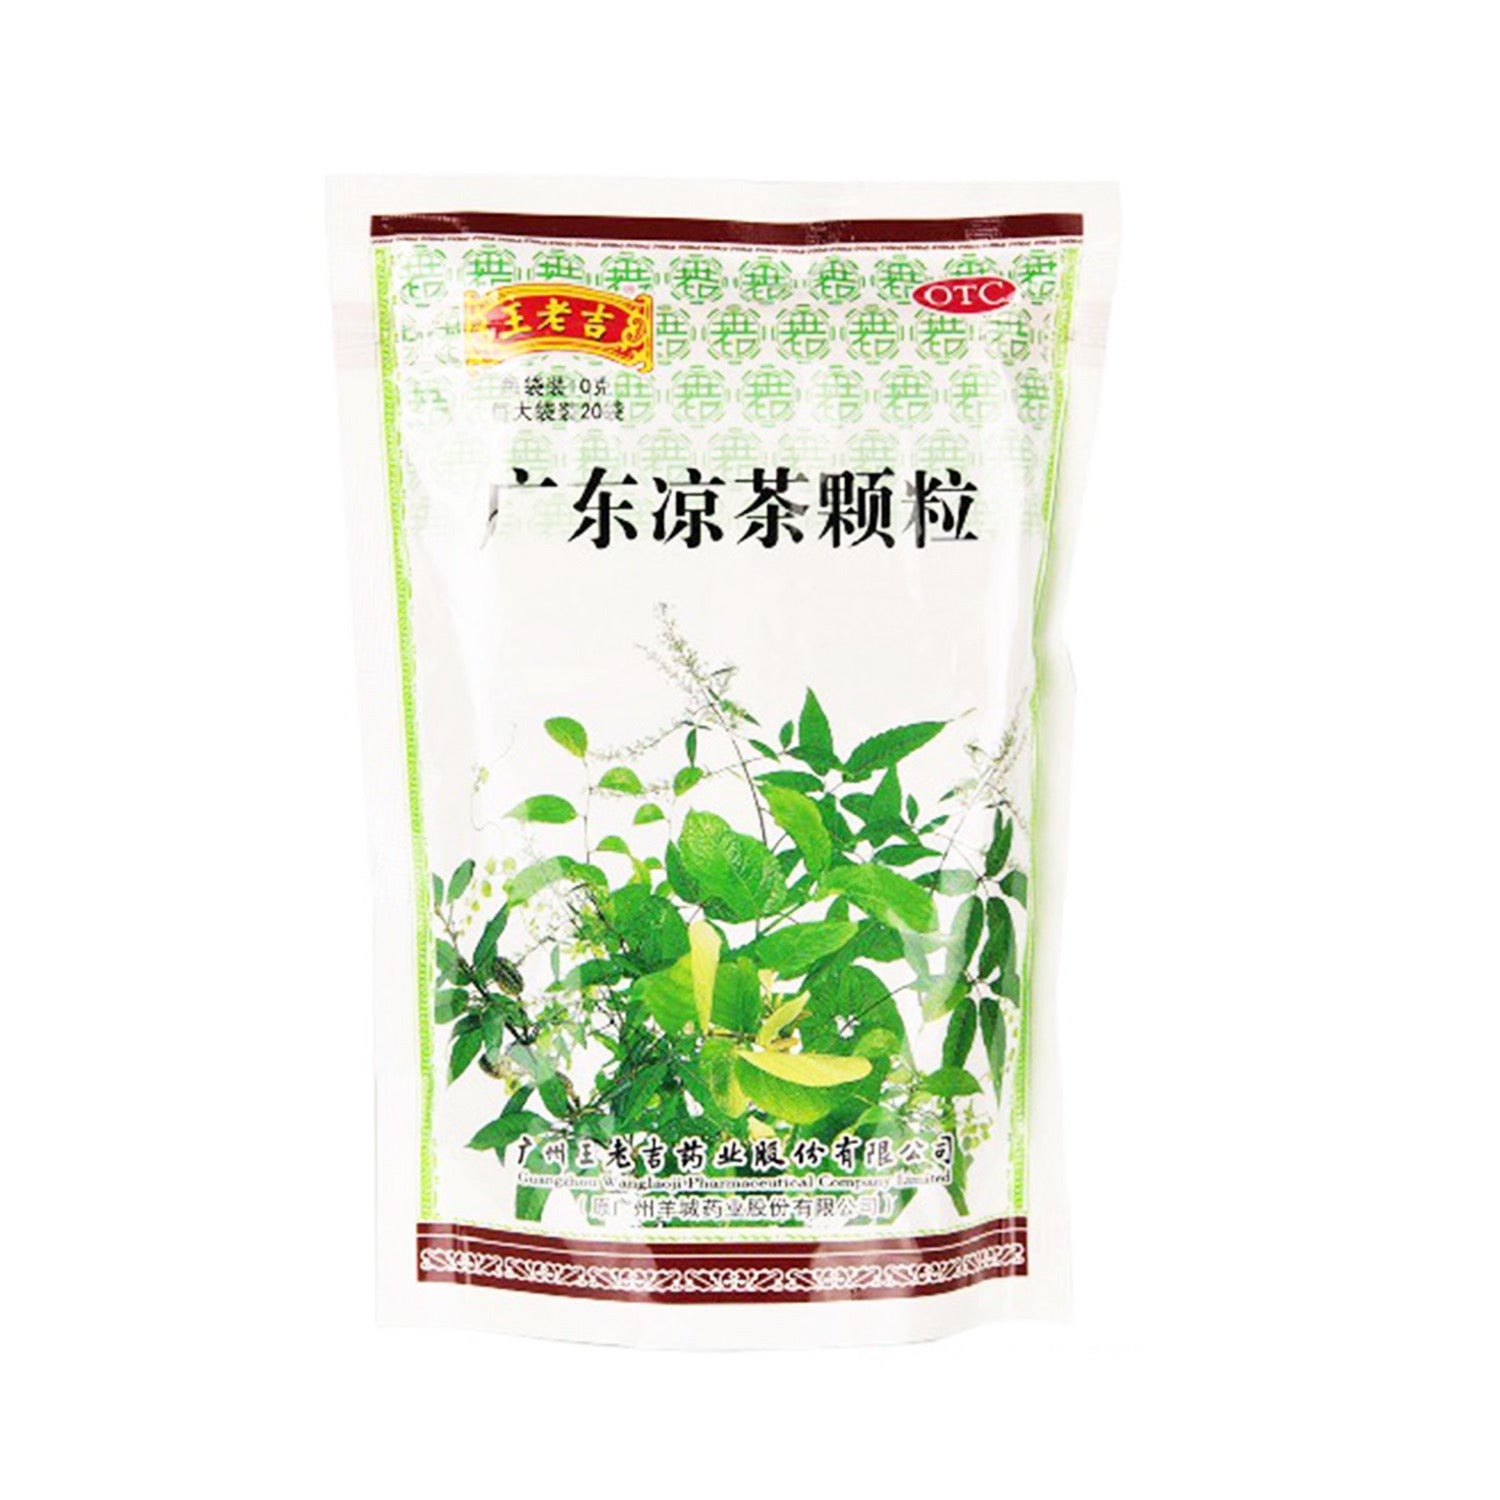 Wang LaoJi GuangDong Herbal Tea Granules